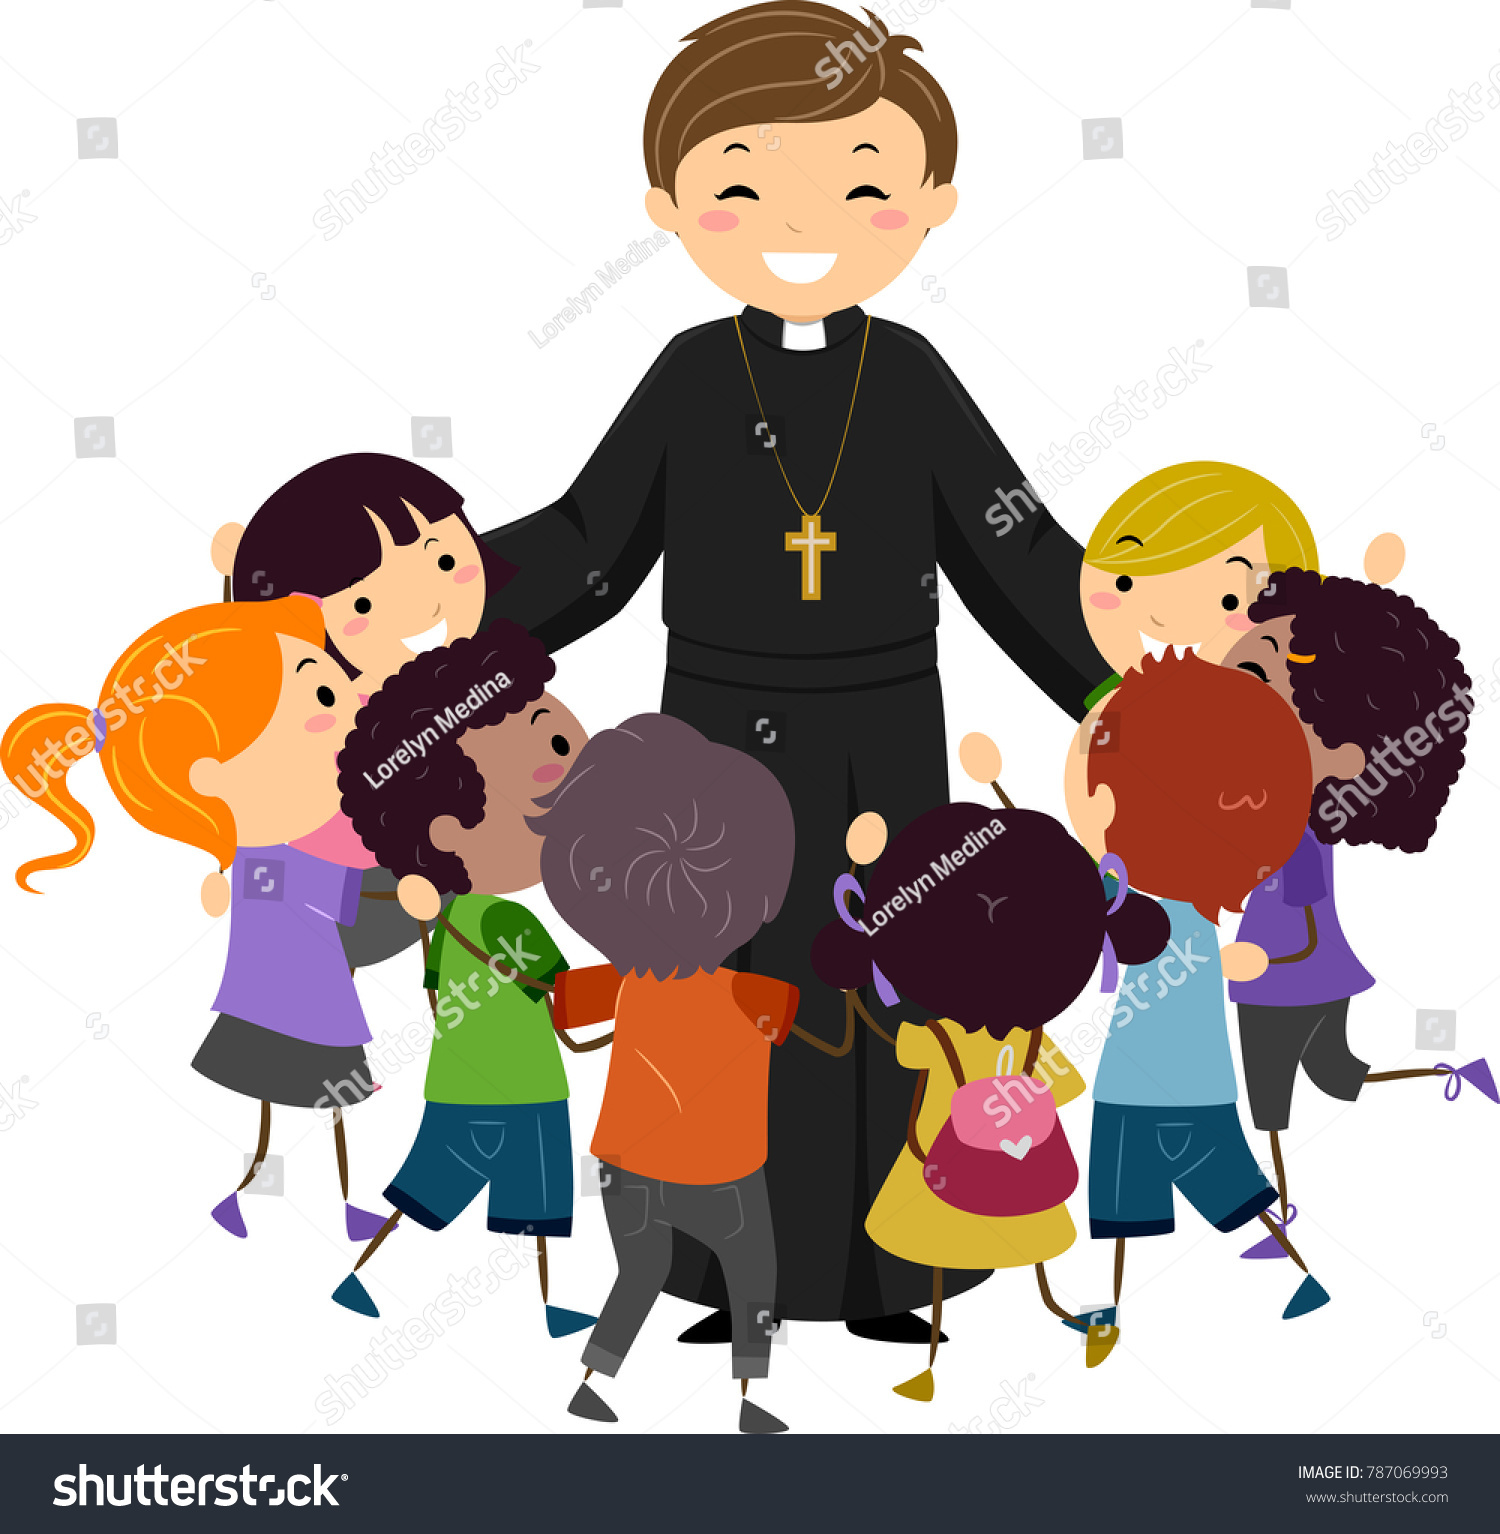 hight resolution of illustration of a priest hugging a group of stickman kids